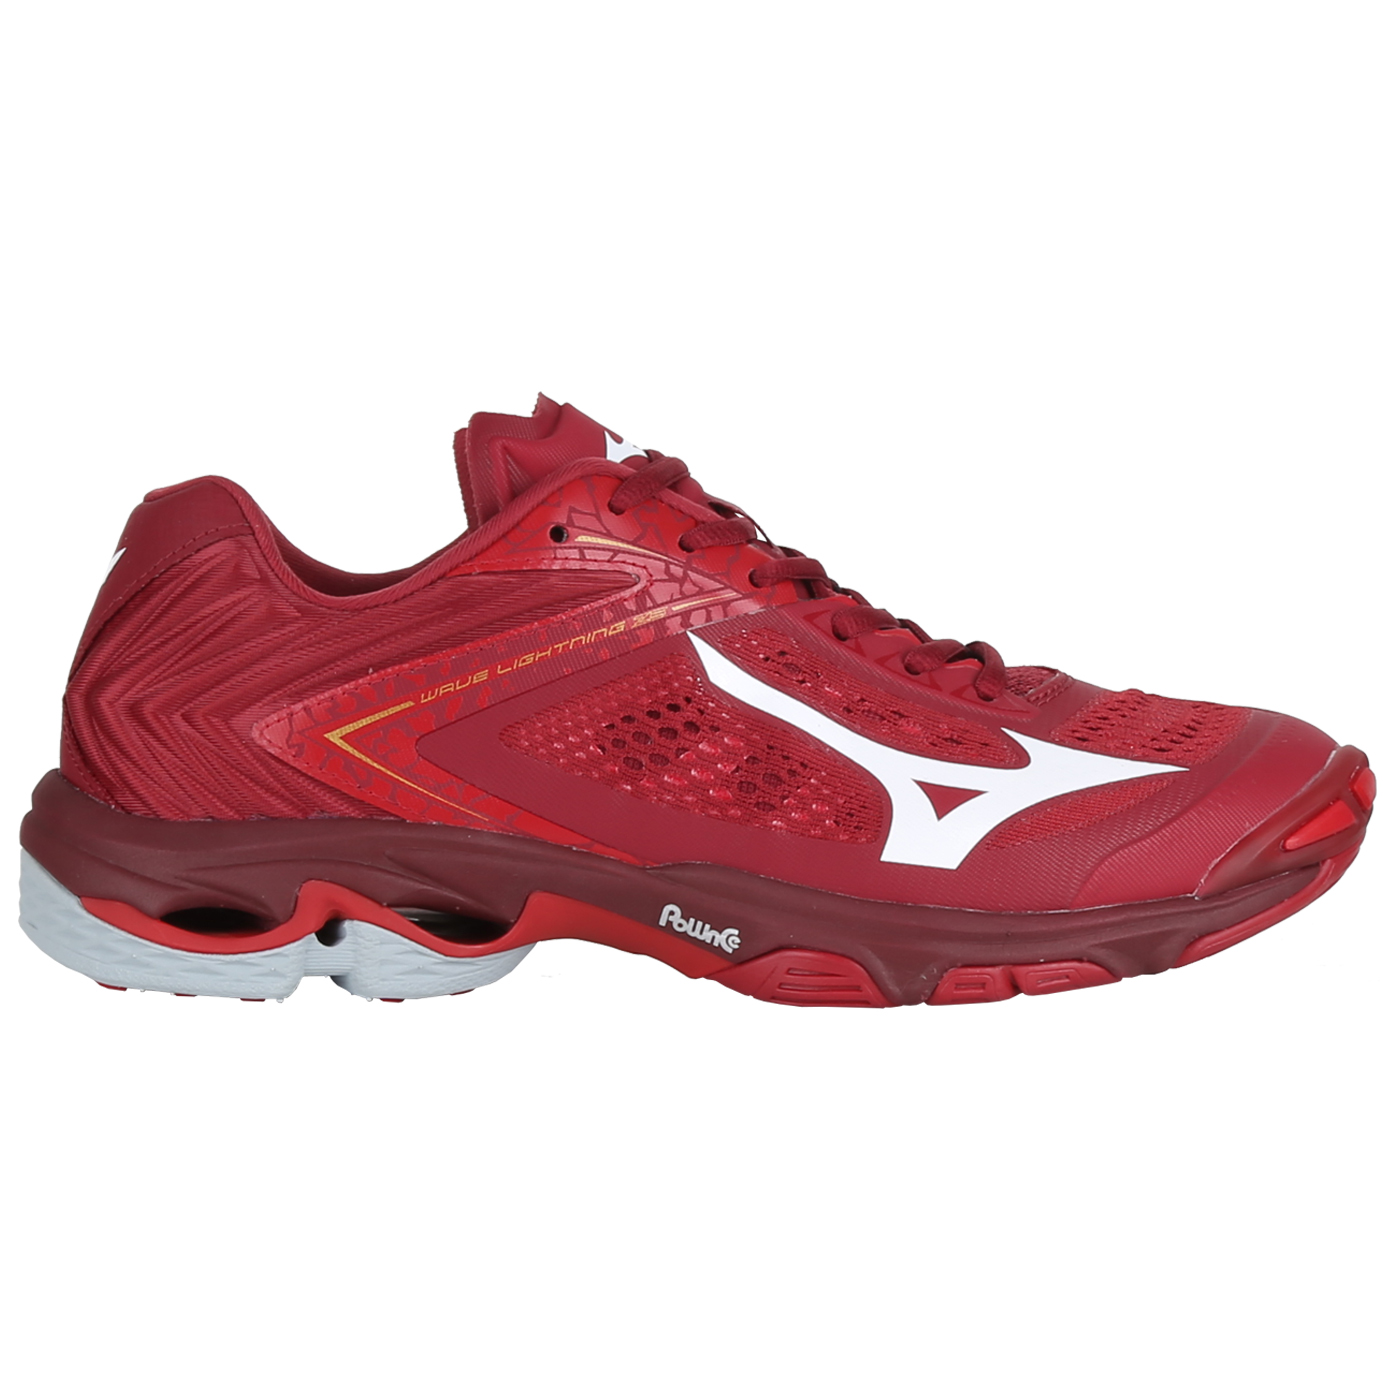 WAVE LIGHTNING Z5-RIO RED/WHITE/SALSA